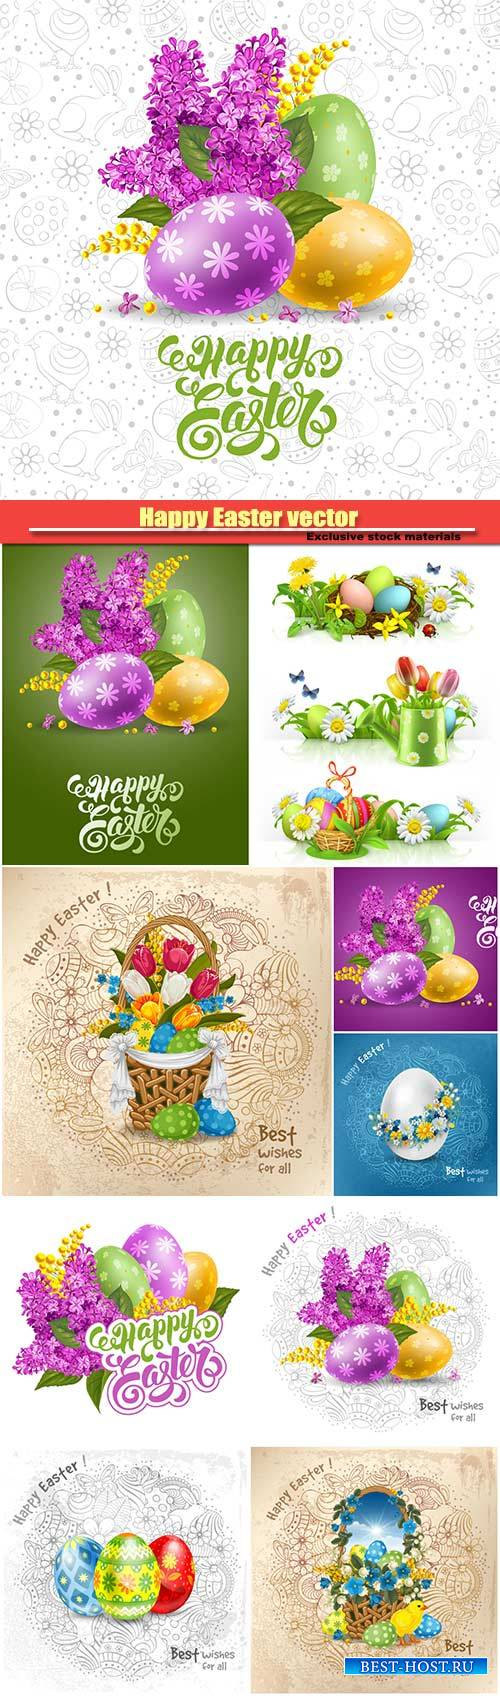 Happy Easter holiday vector backgrounds